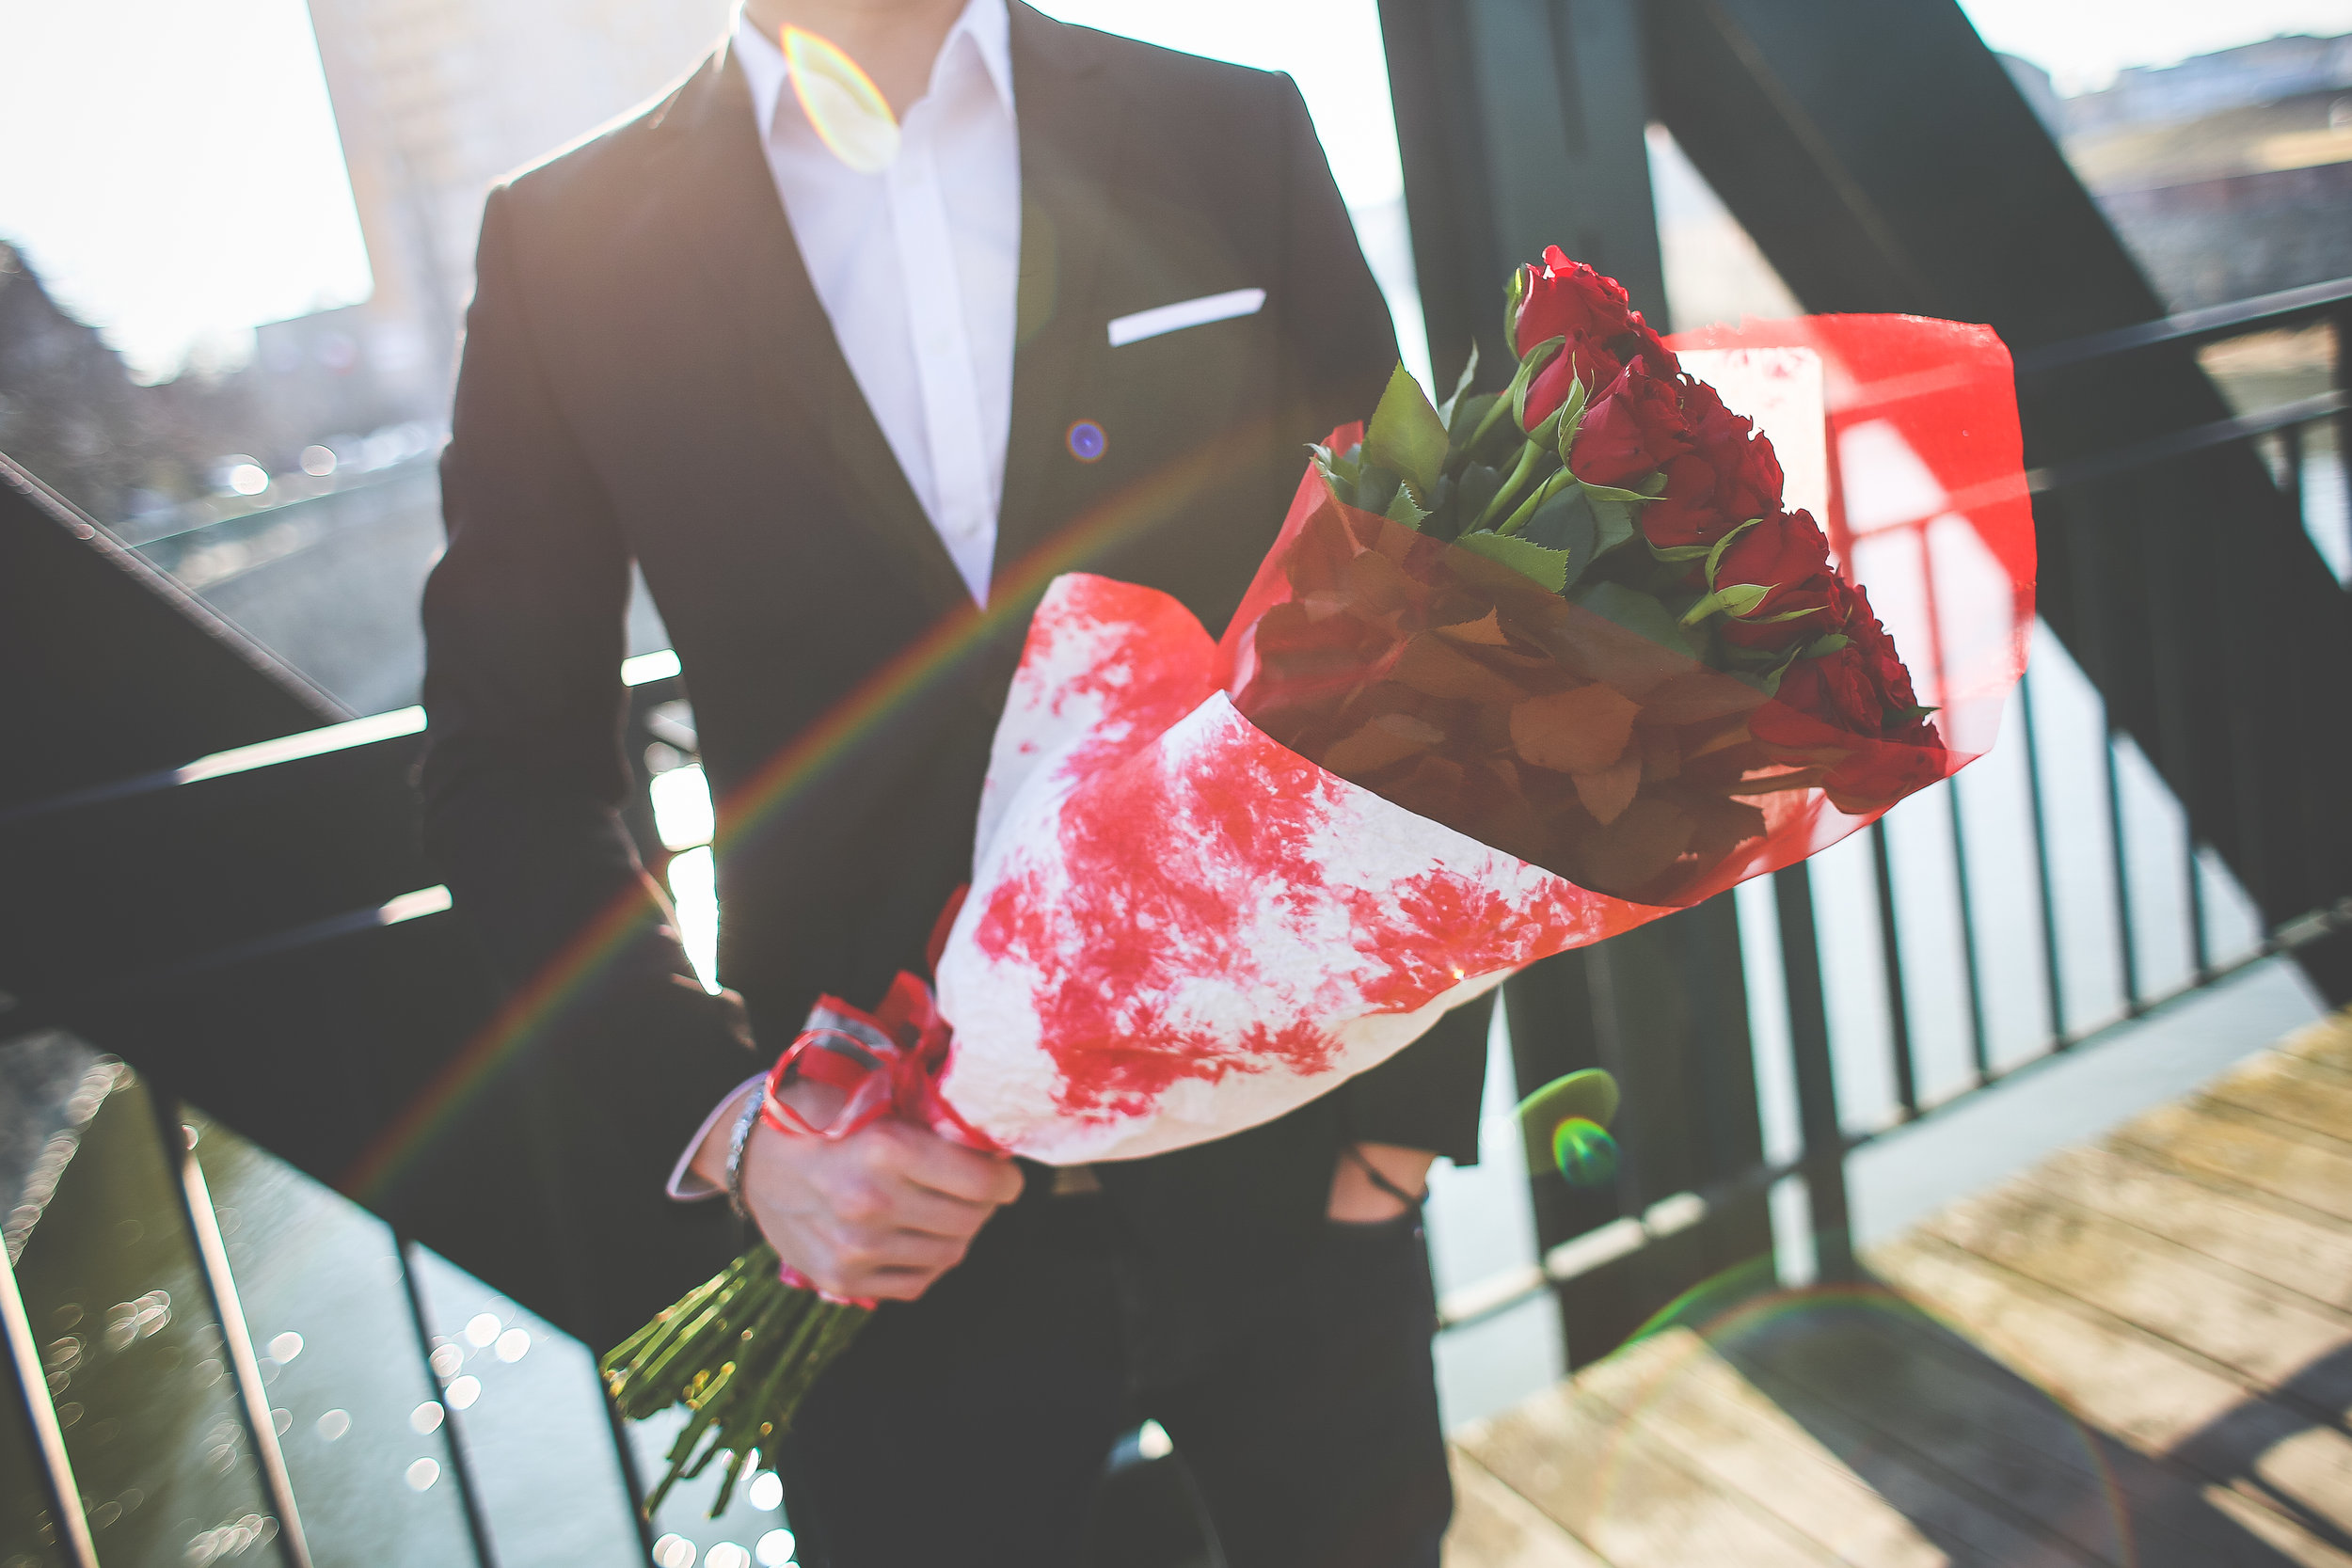 gentleman-holding-a-bouquet-of-roses-and-waiting-for-his-wife-picjumbo-com.jpg